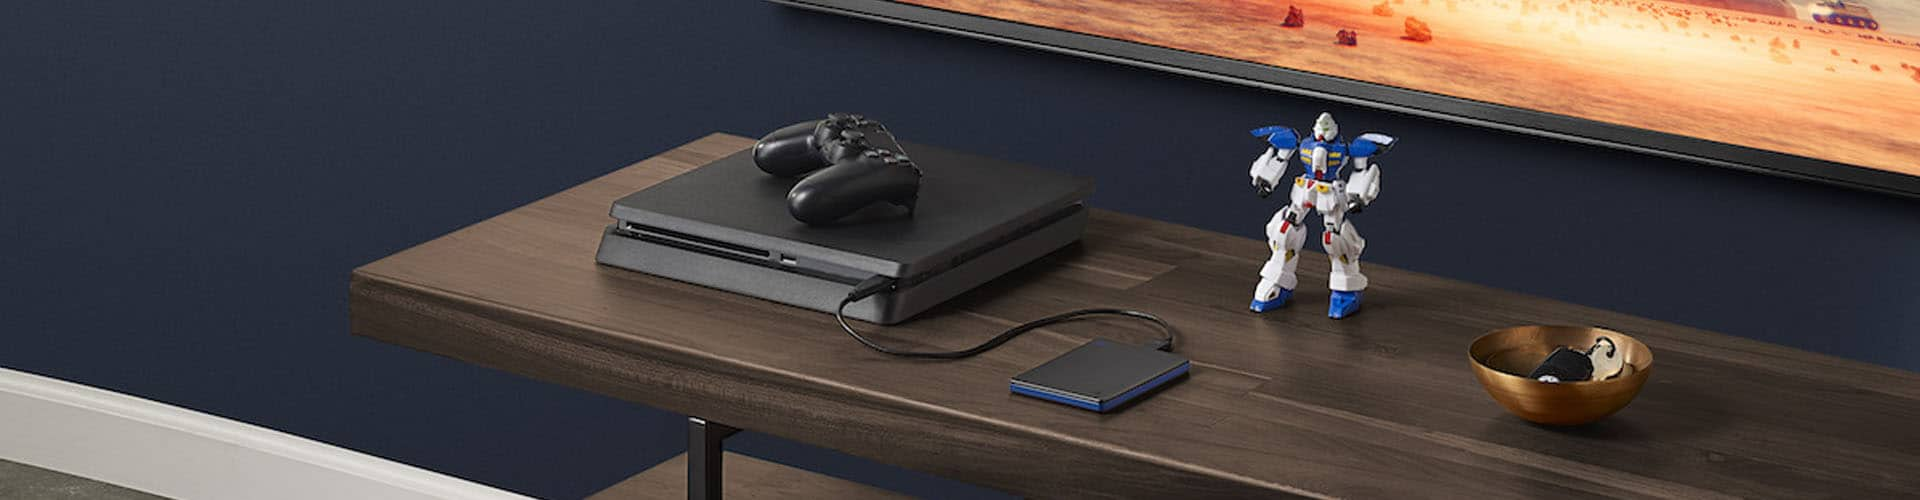 Best External Hard Drive For PS4 2019 – The Ultimate Buyer's Guide